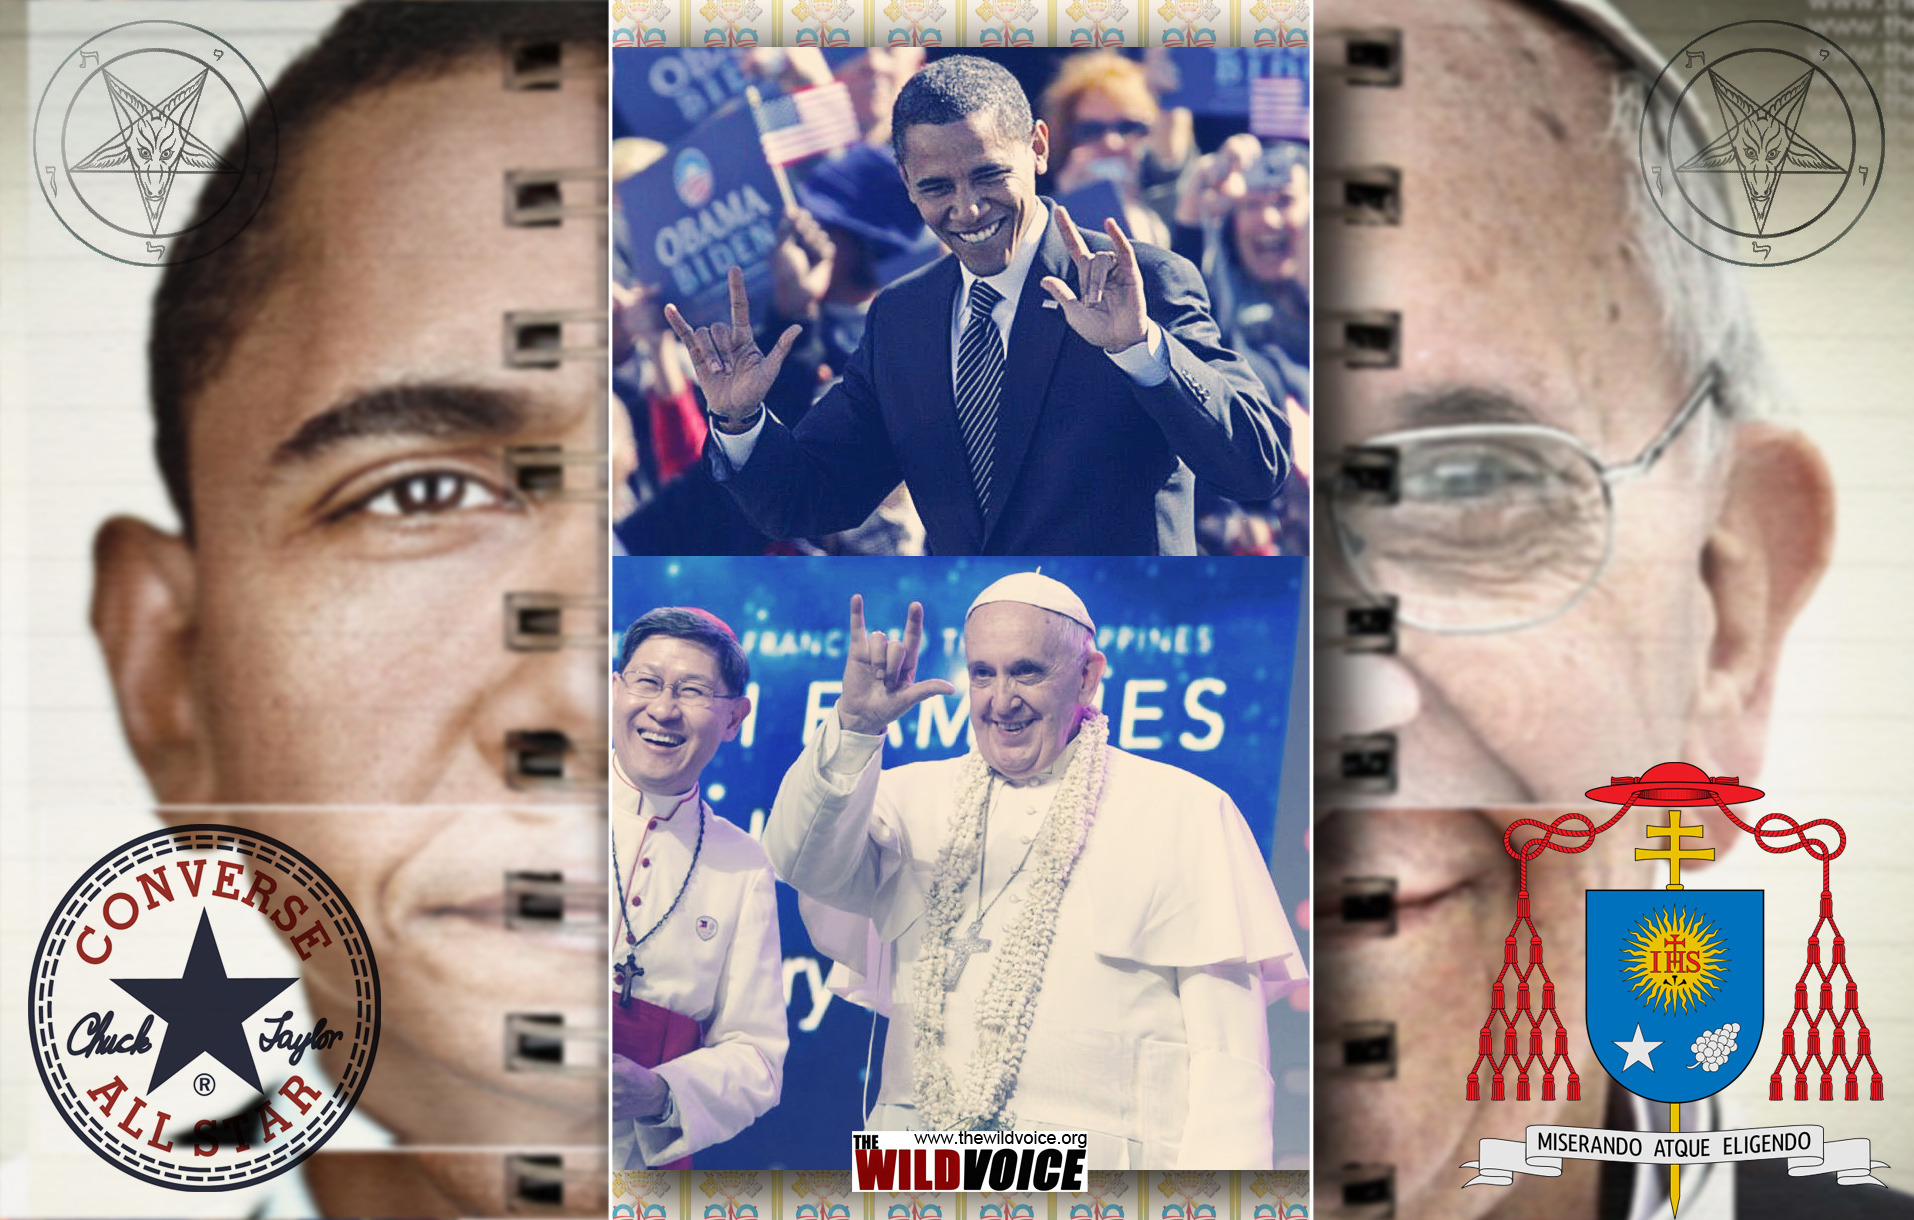 False Prophet, Jorge Mario Bergoglio, Pope, Francis, horns, devil, Satan, Helen Keller, Barack Obama, President, The Wild Voice, satanism, Church, Catholic